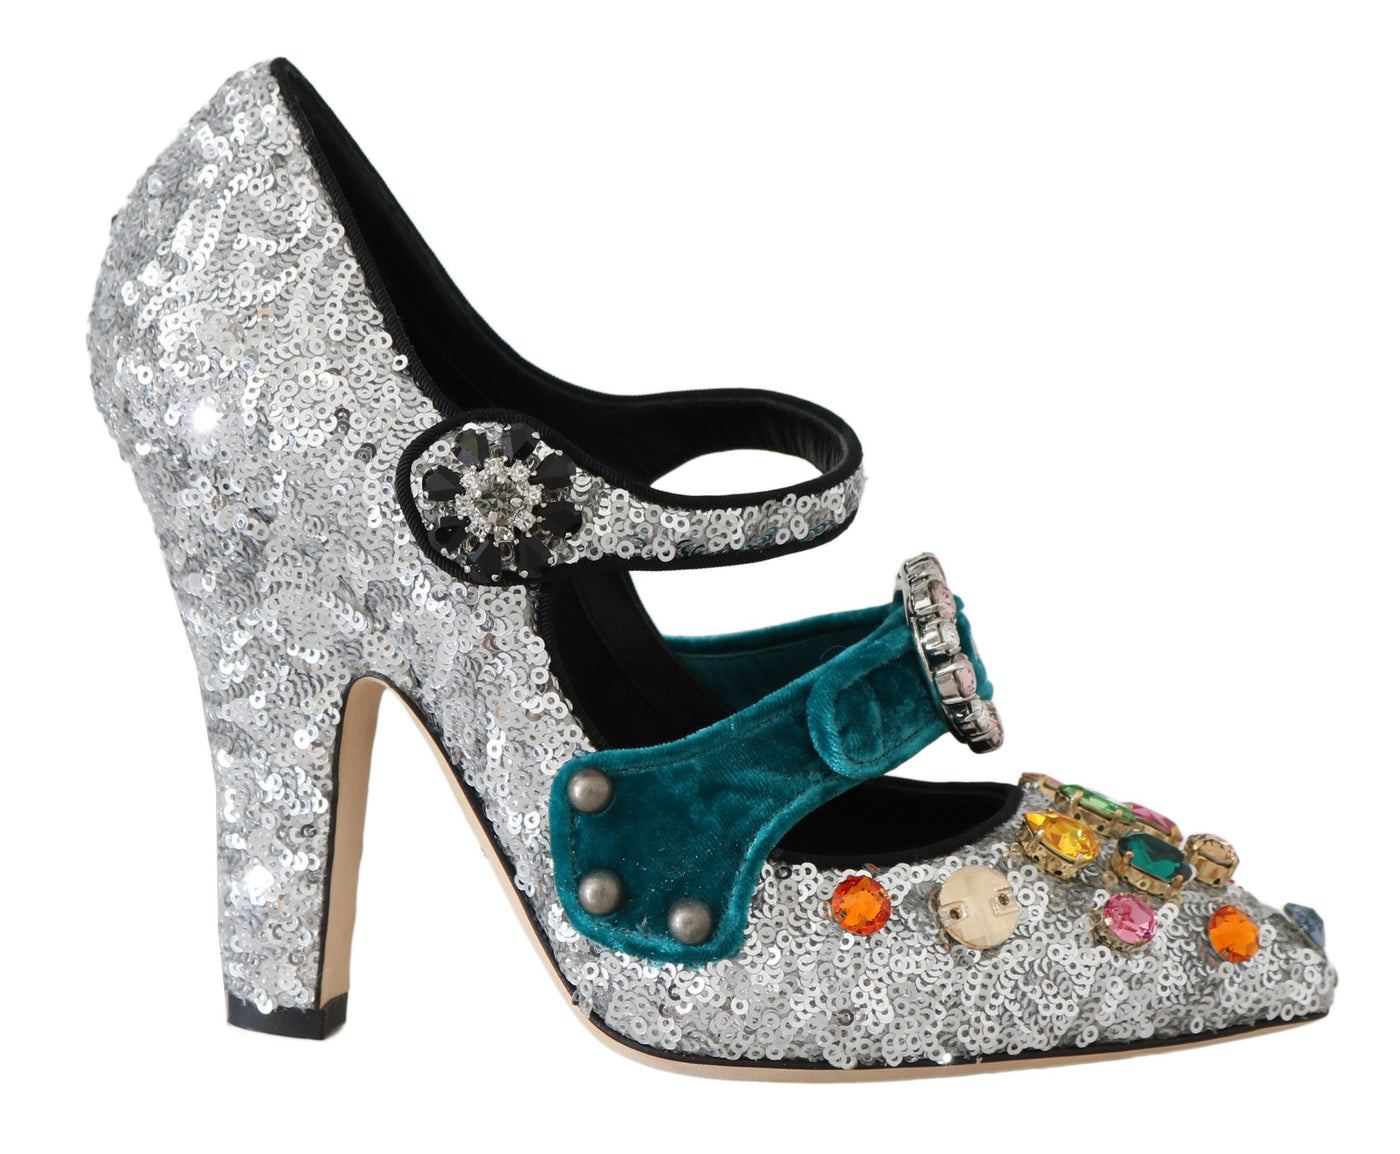 Silver Sequined Crystal Mary Janes Pumps